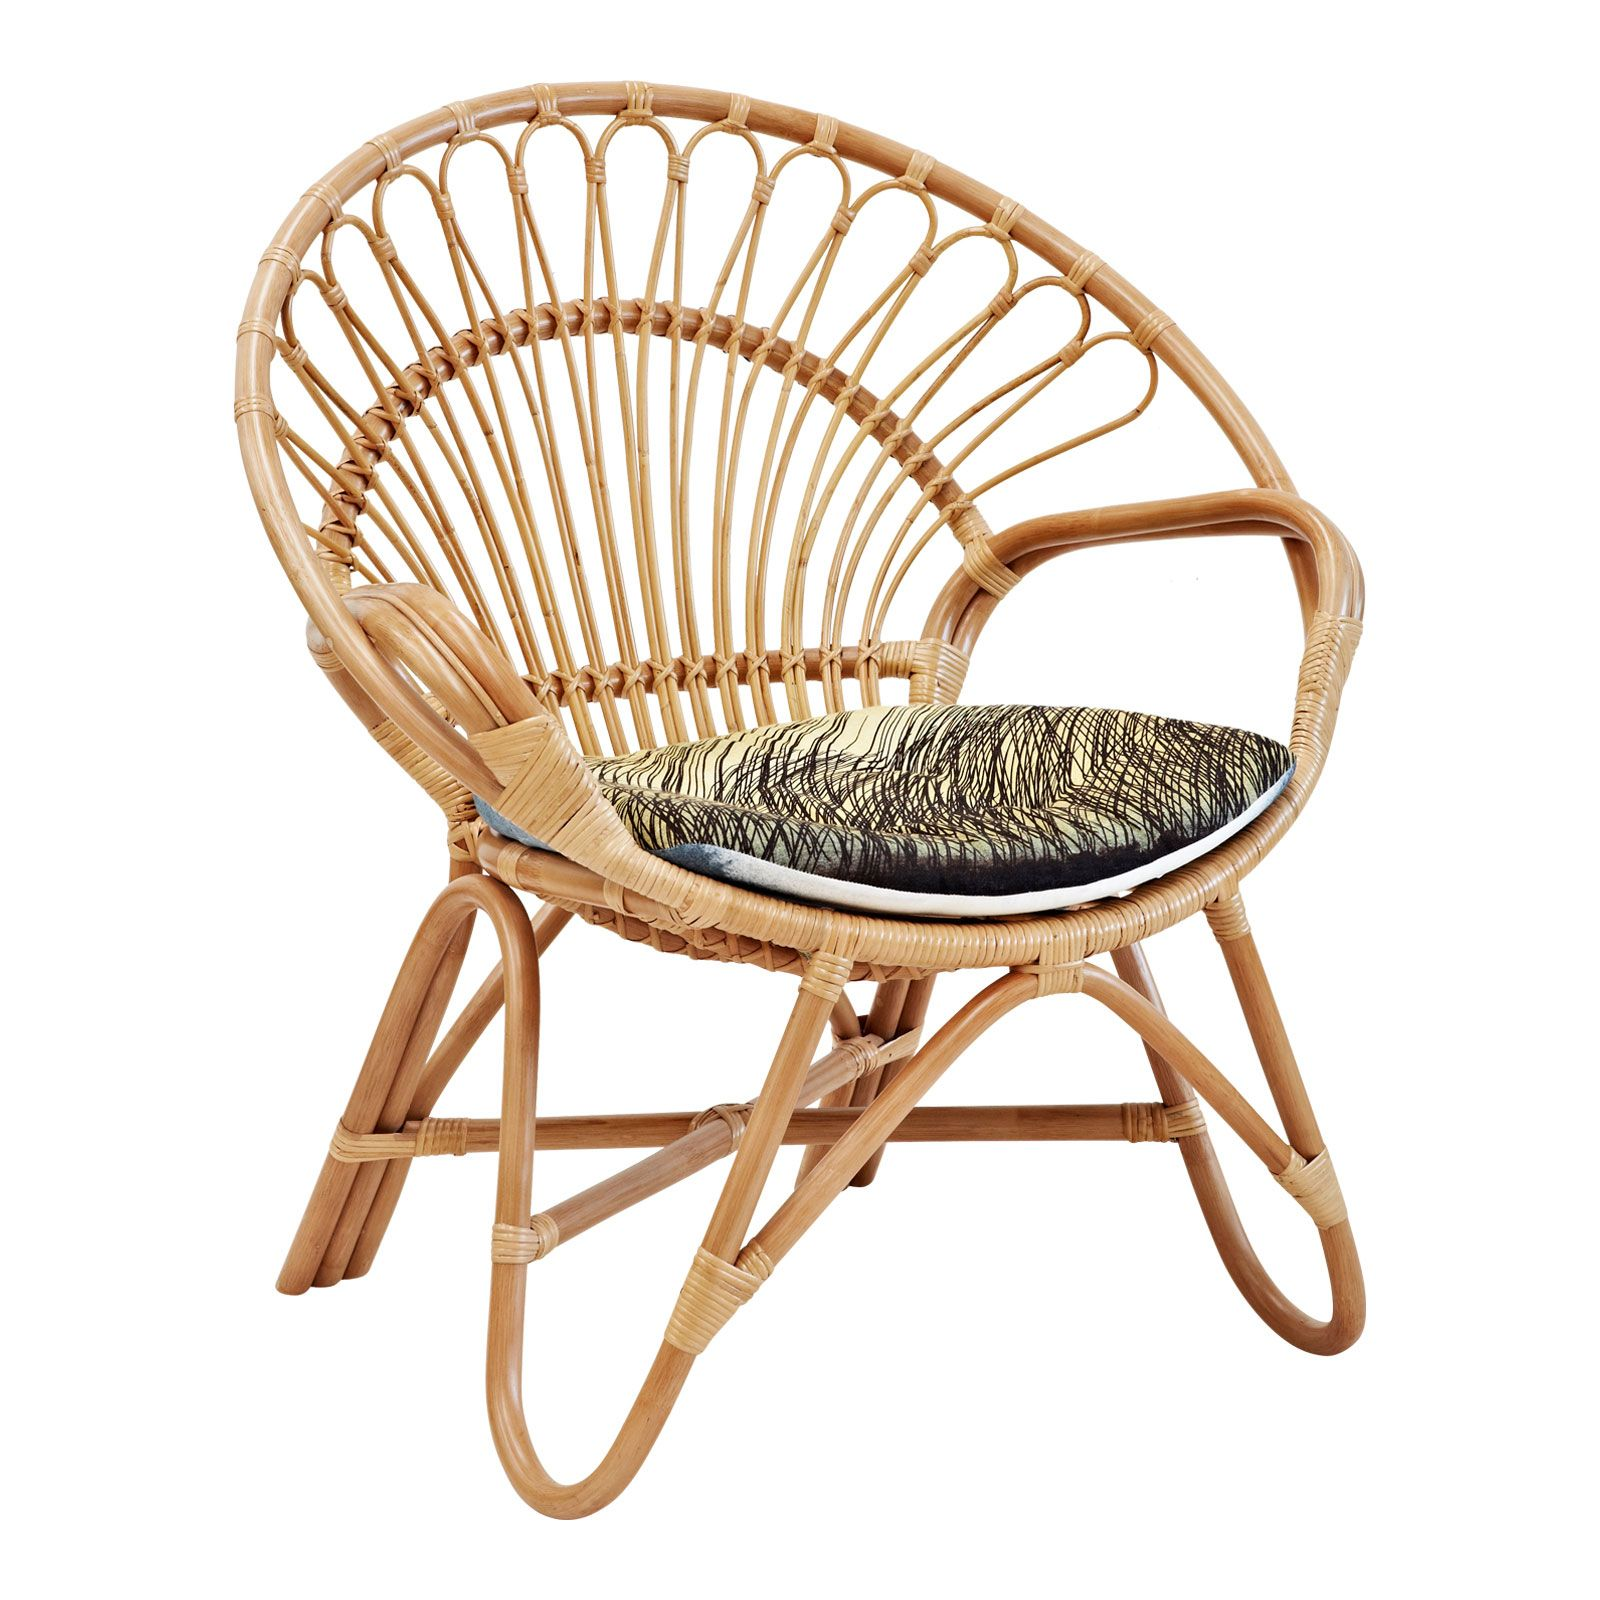 Appealing Rattan Chair For Outdoor Or Indoor Furniture ...